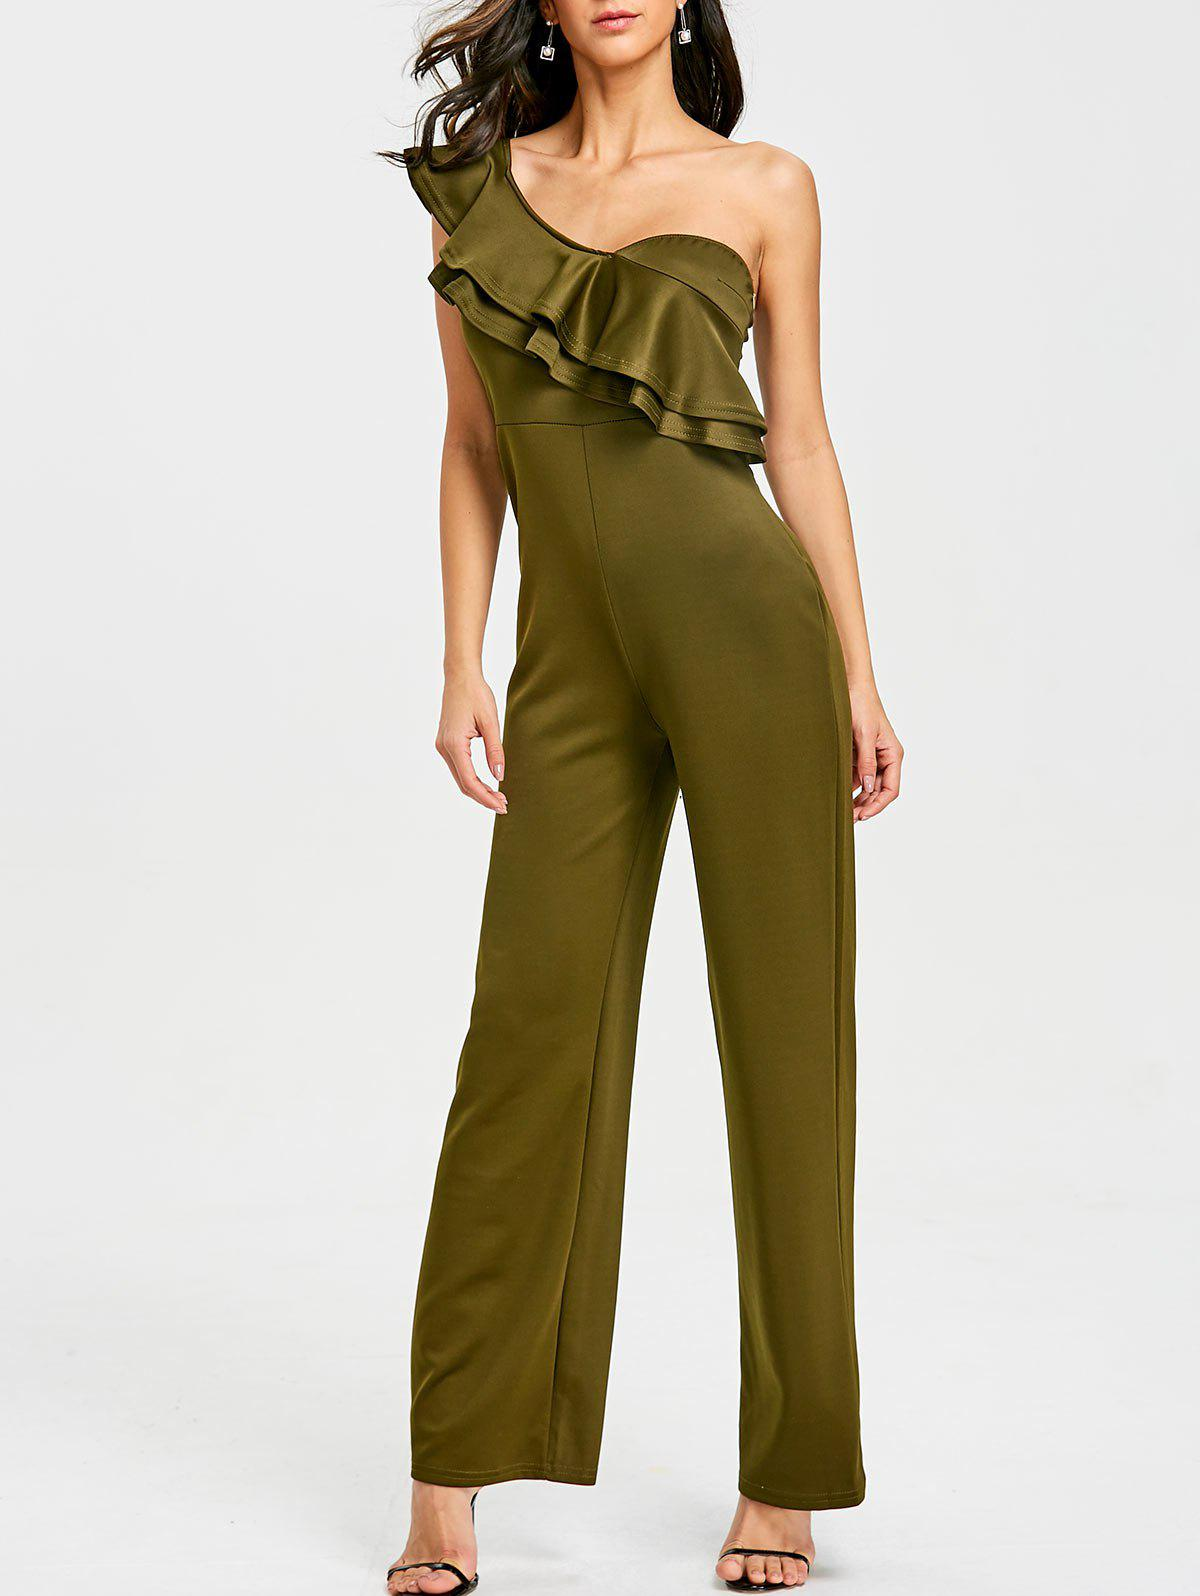 Fashion Ruffle One Shoulder Wide Leg Jumpsuit